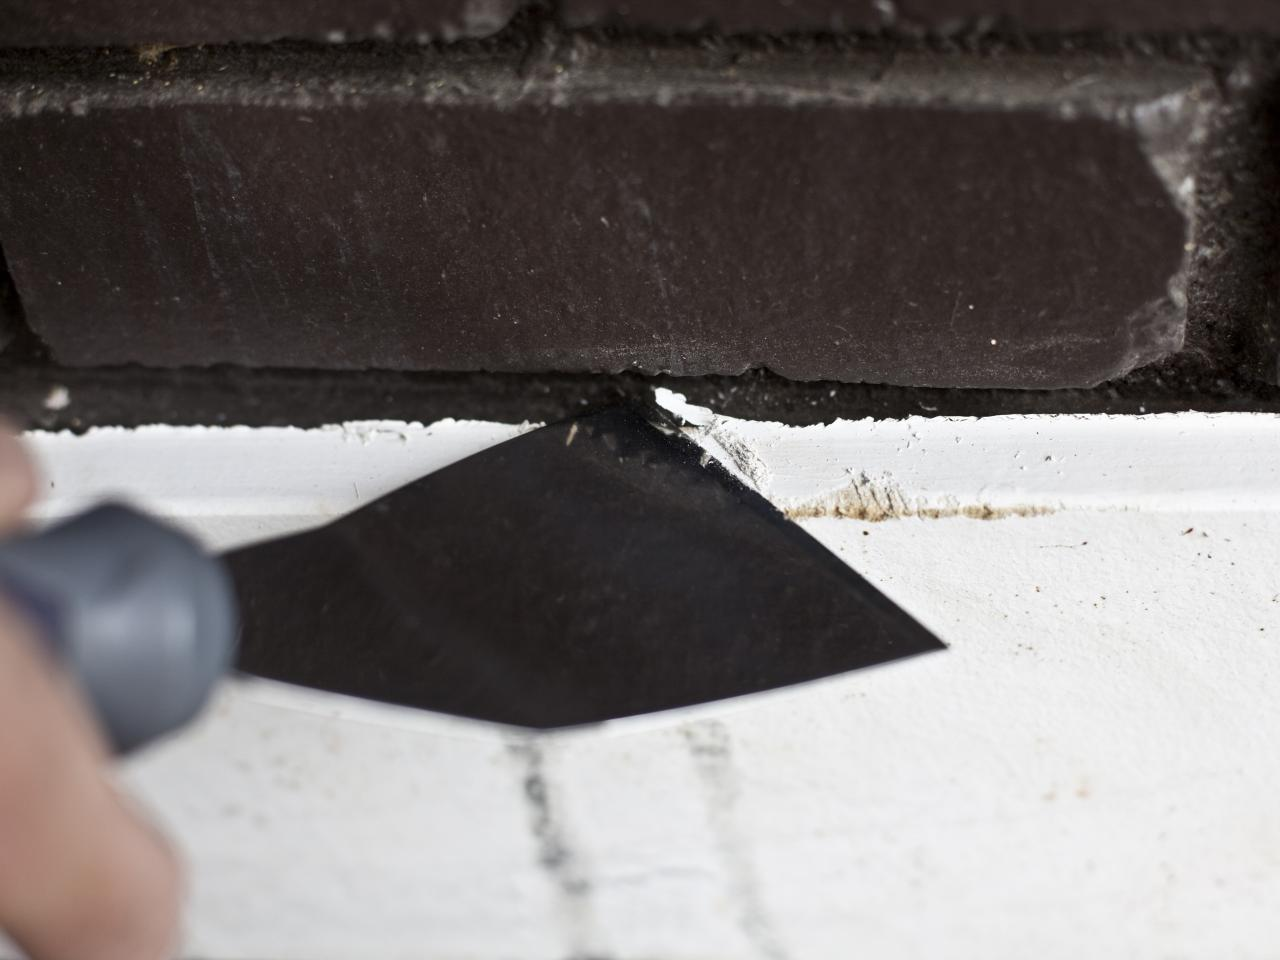 Painting The Exterior Of Your Home painting the exterior of your home exterior home painting house painting exterior painting Step 3 Remove Loose Paint